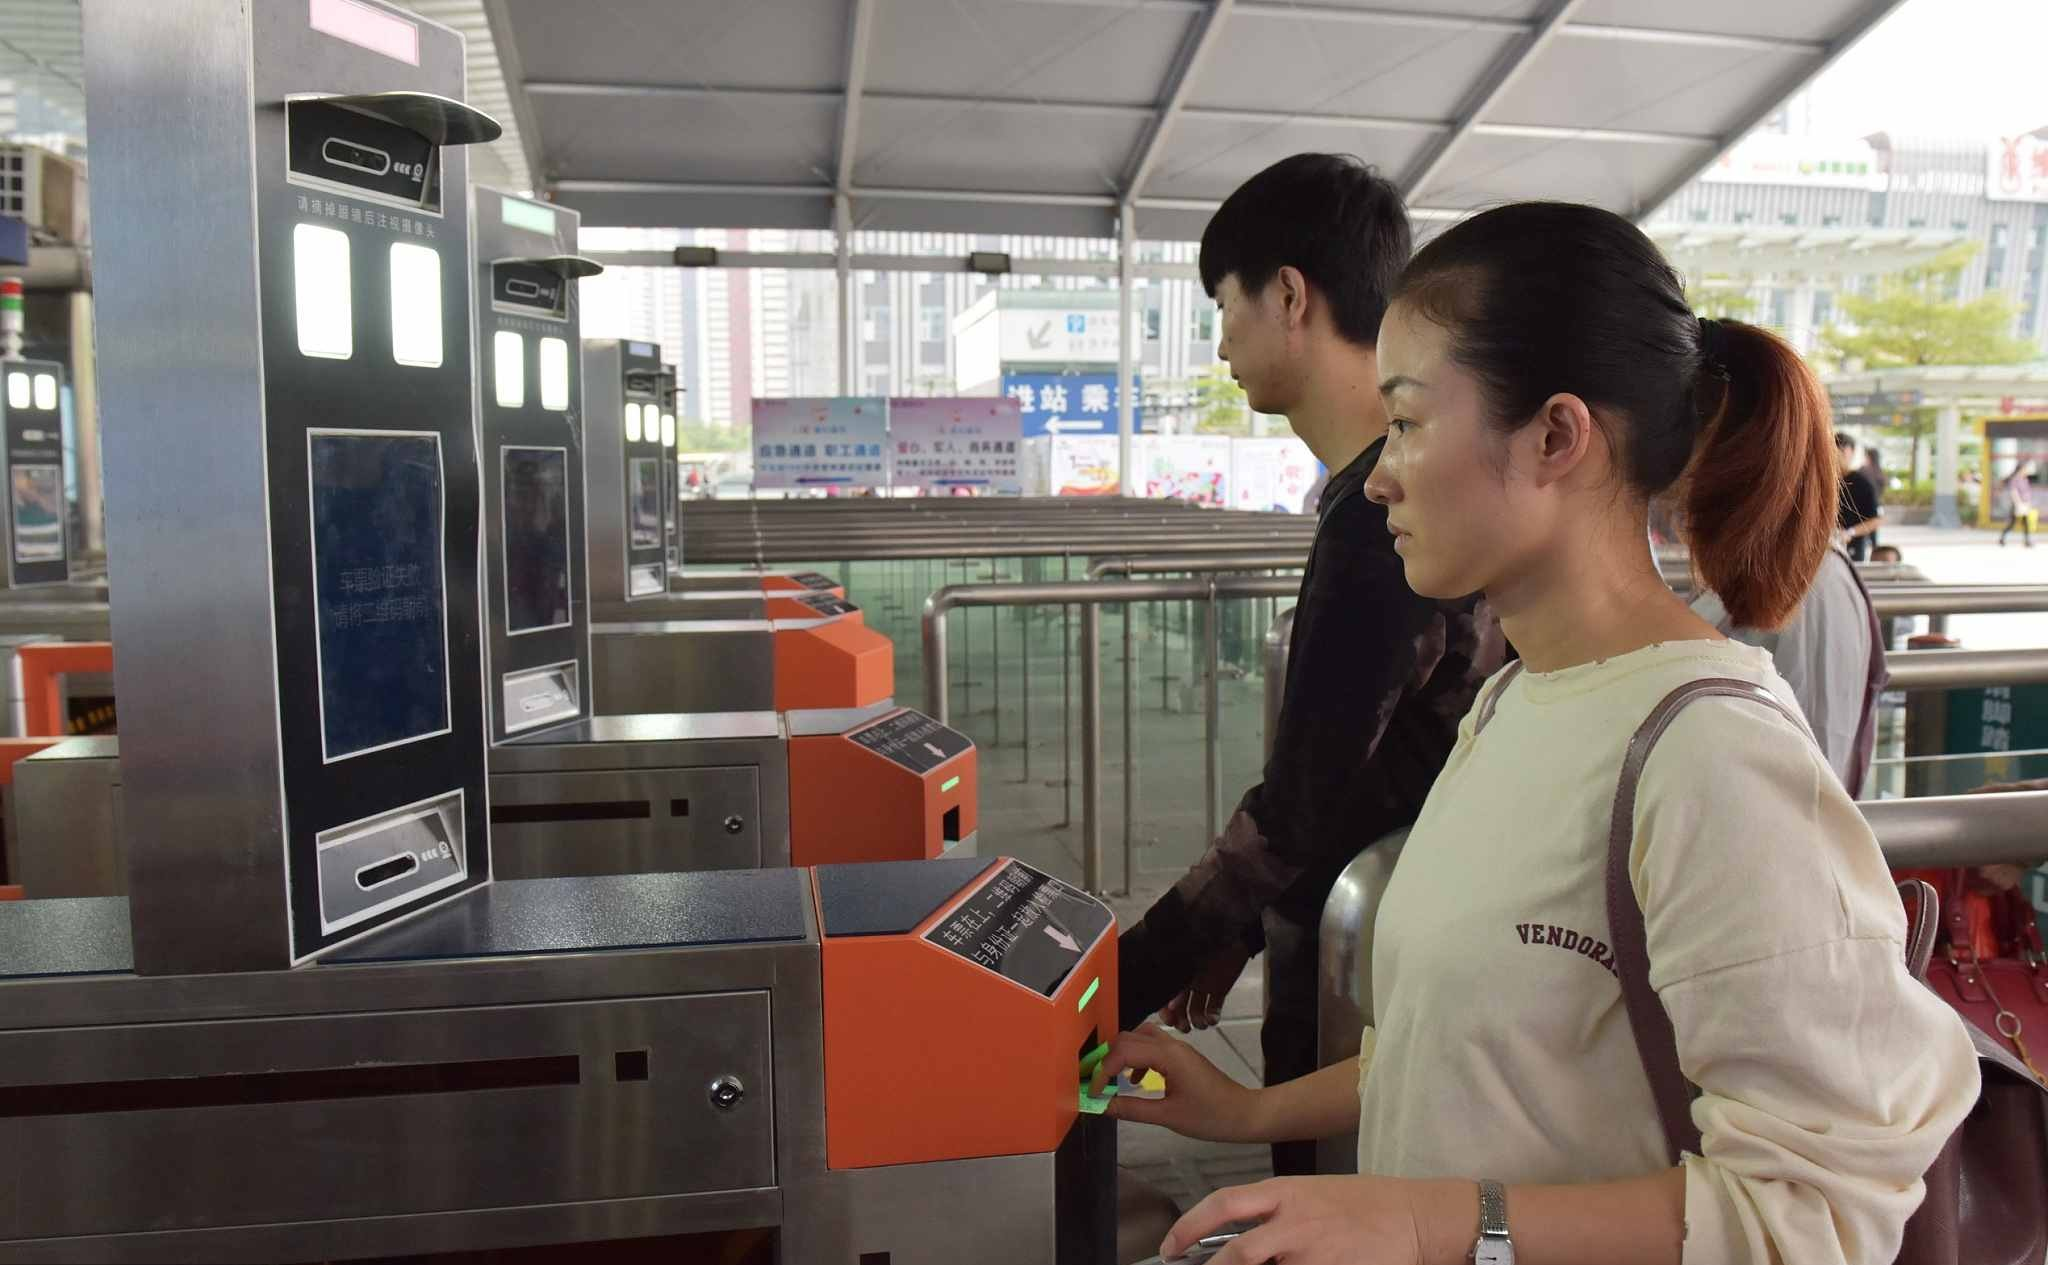 Passengers are identified by facial recognition system by swiping ID cards at Shenzhen North Railway Station